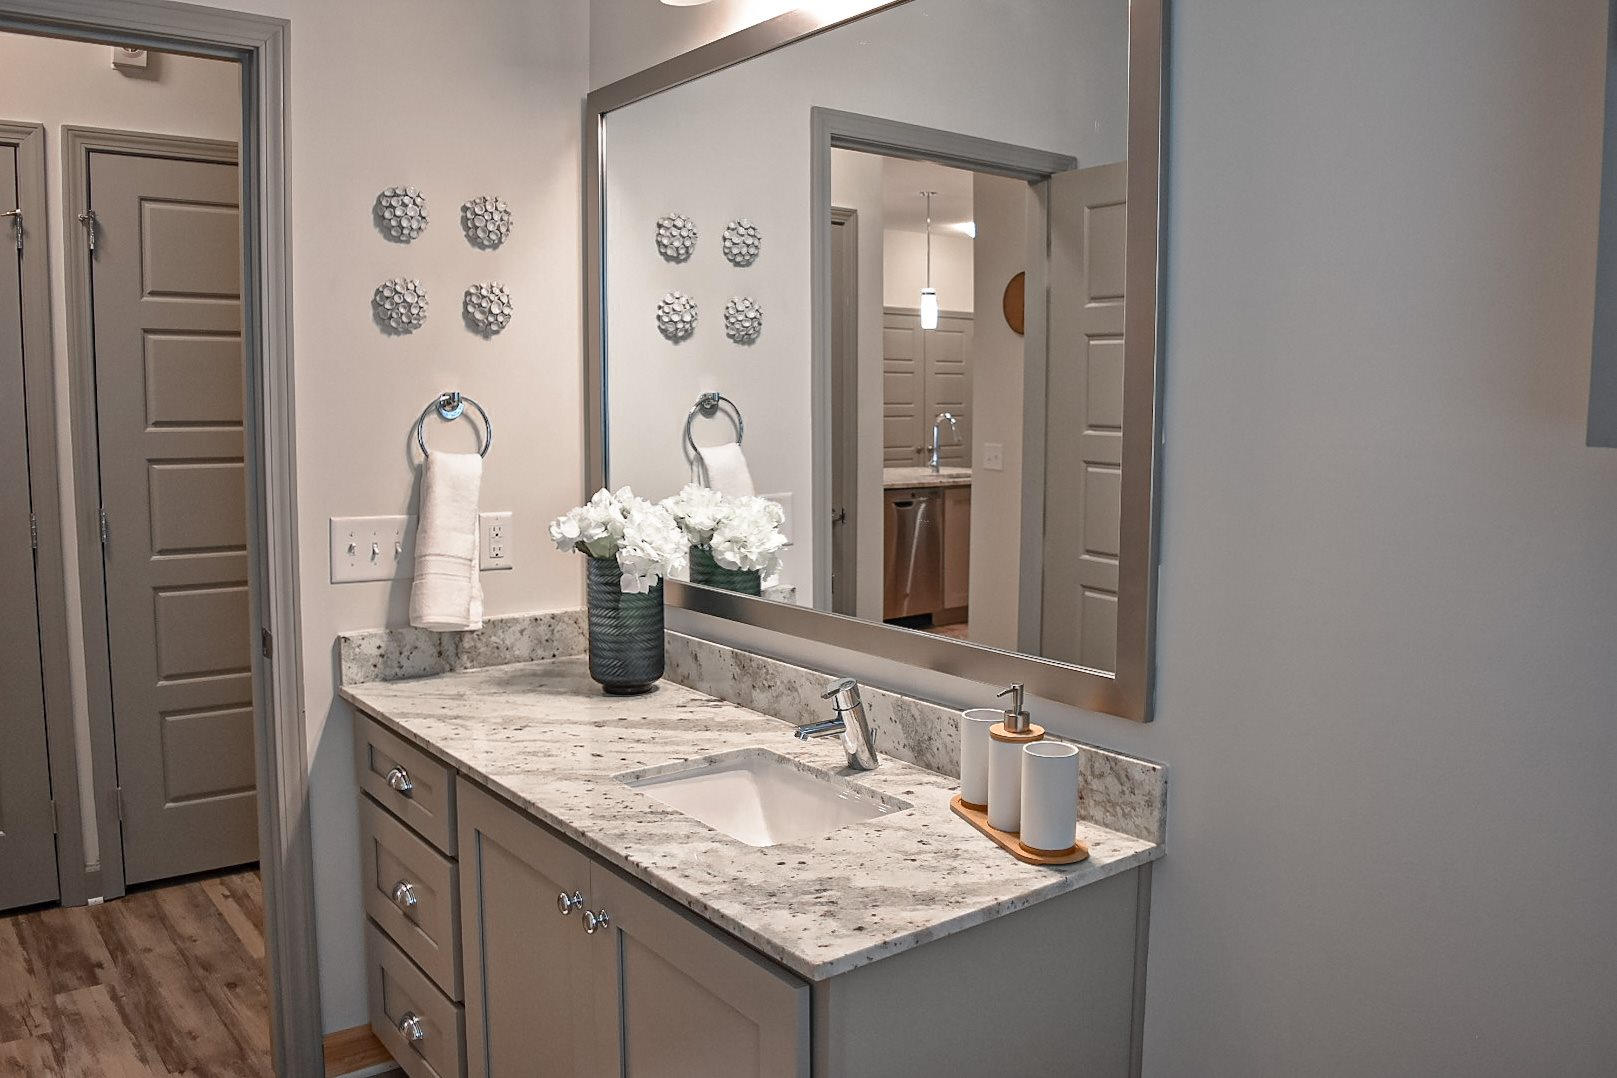 Bathroom with Modern Finishes and Large Vanity